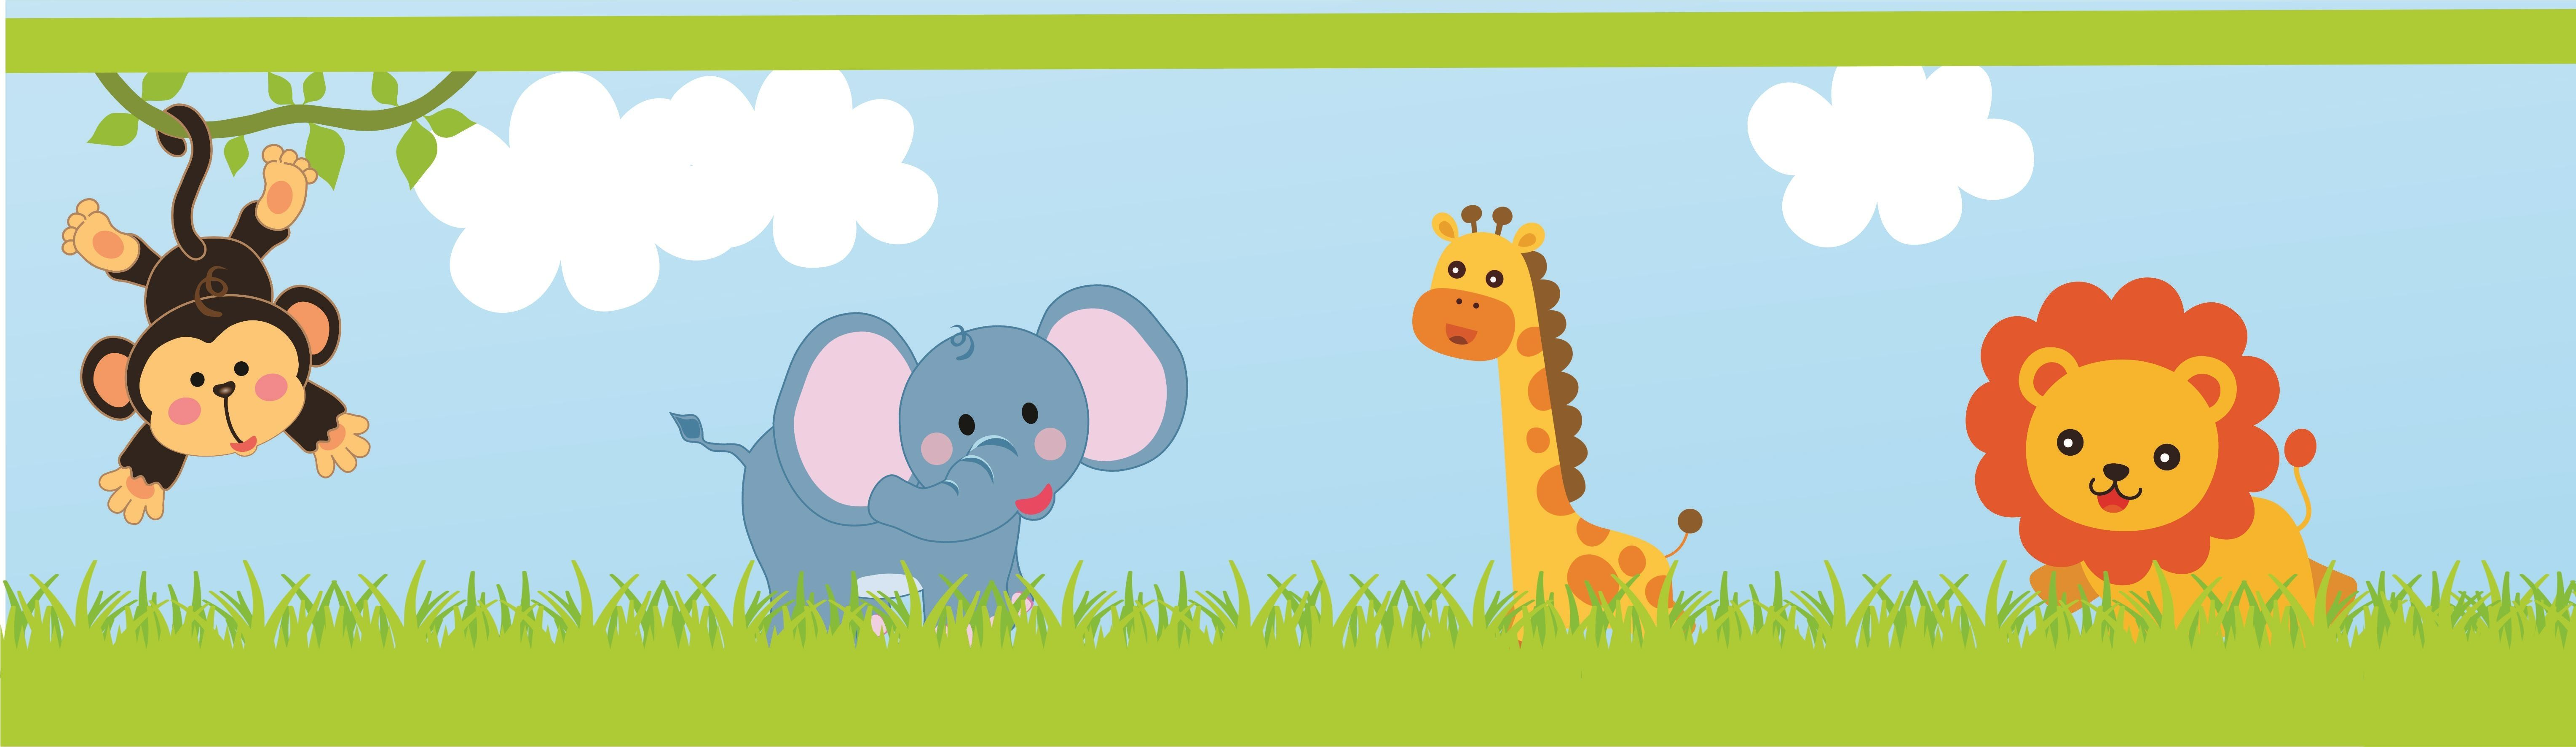 Images of jungle baby. Animals clipart borders